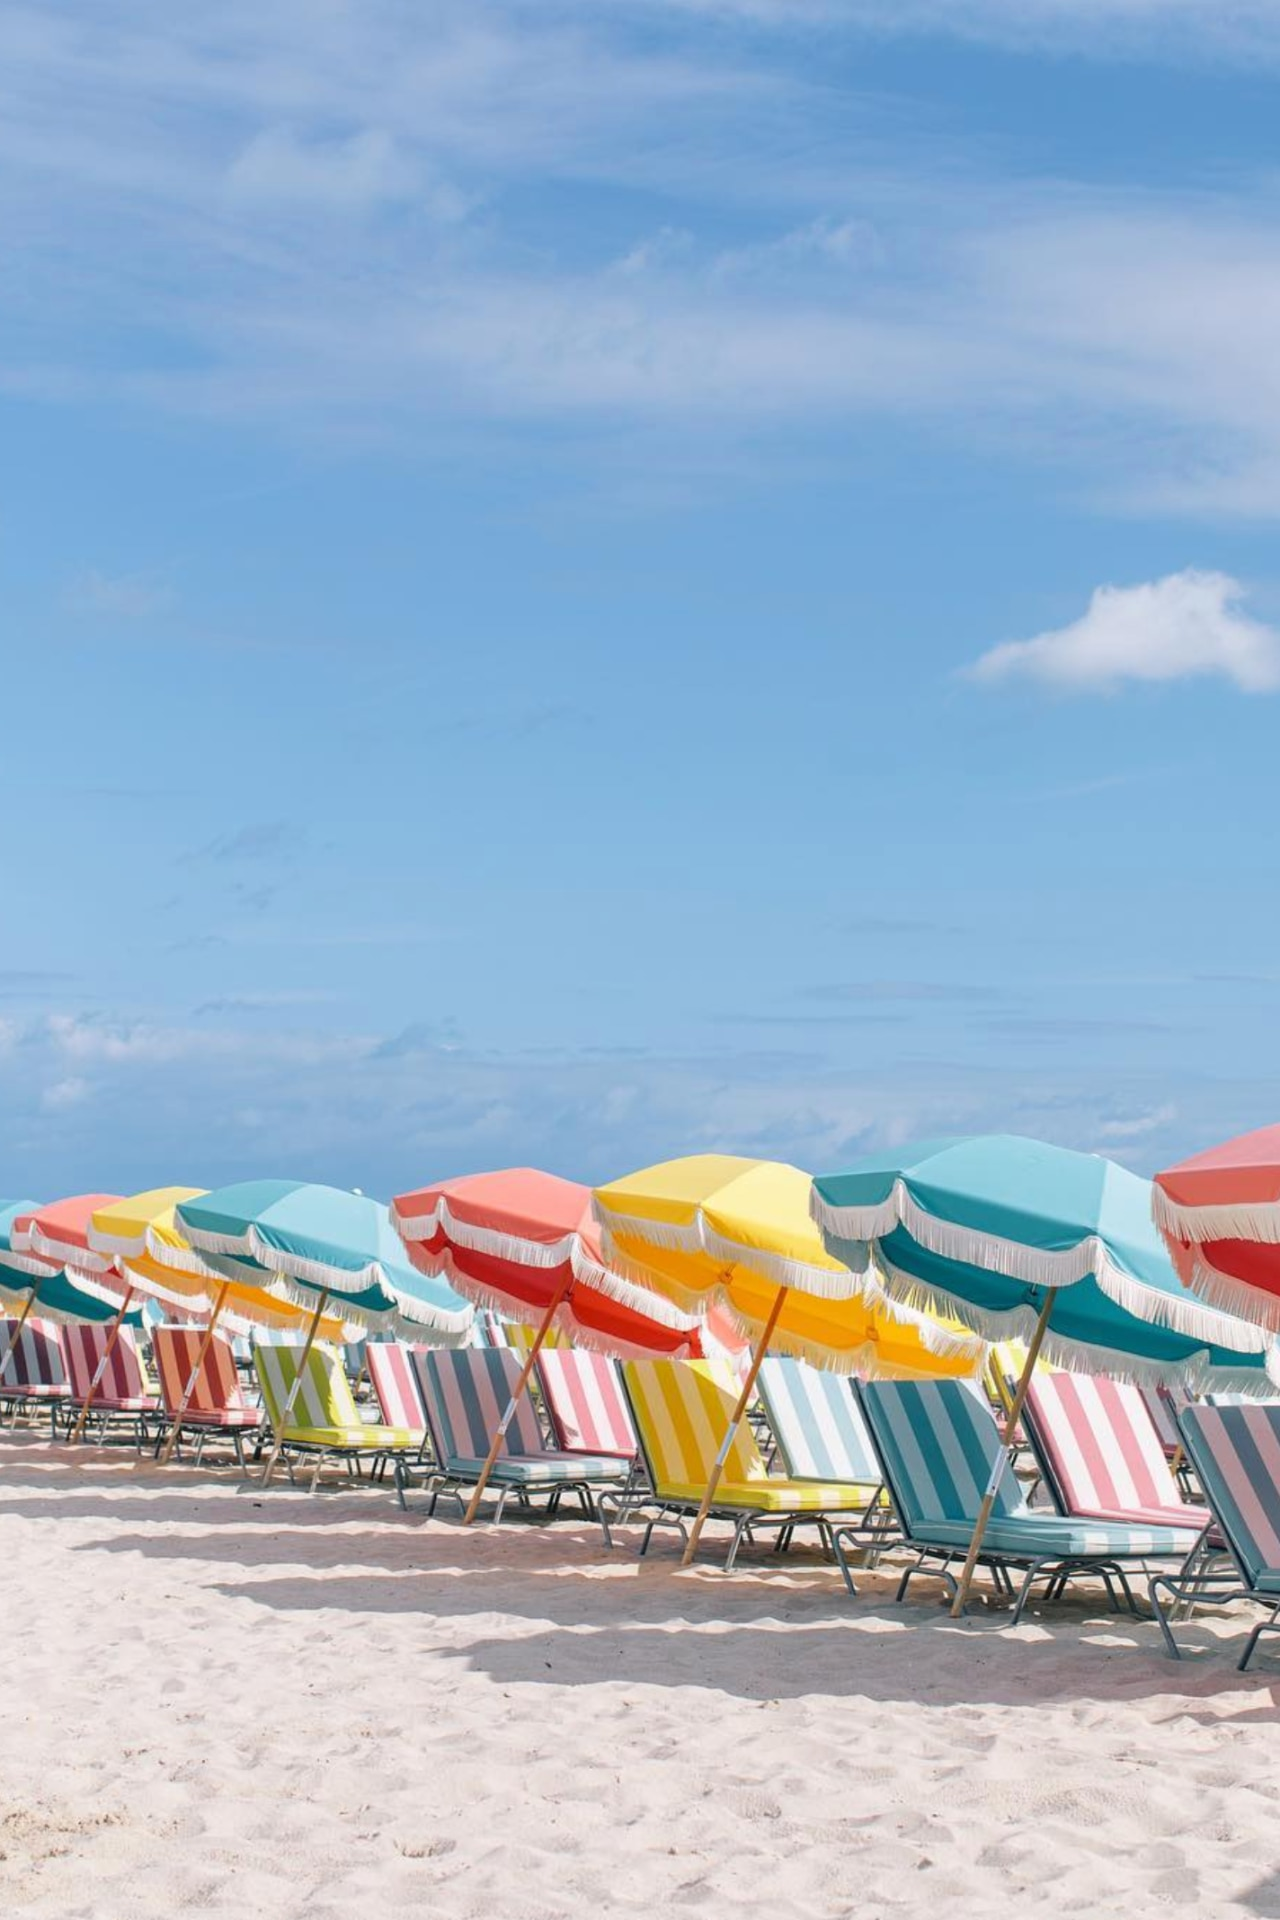 22 photos of beach umbrellas that will give you total travel envy